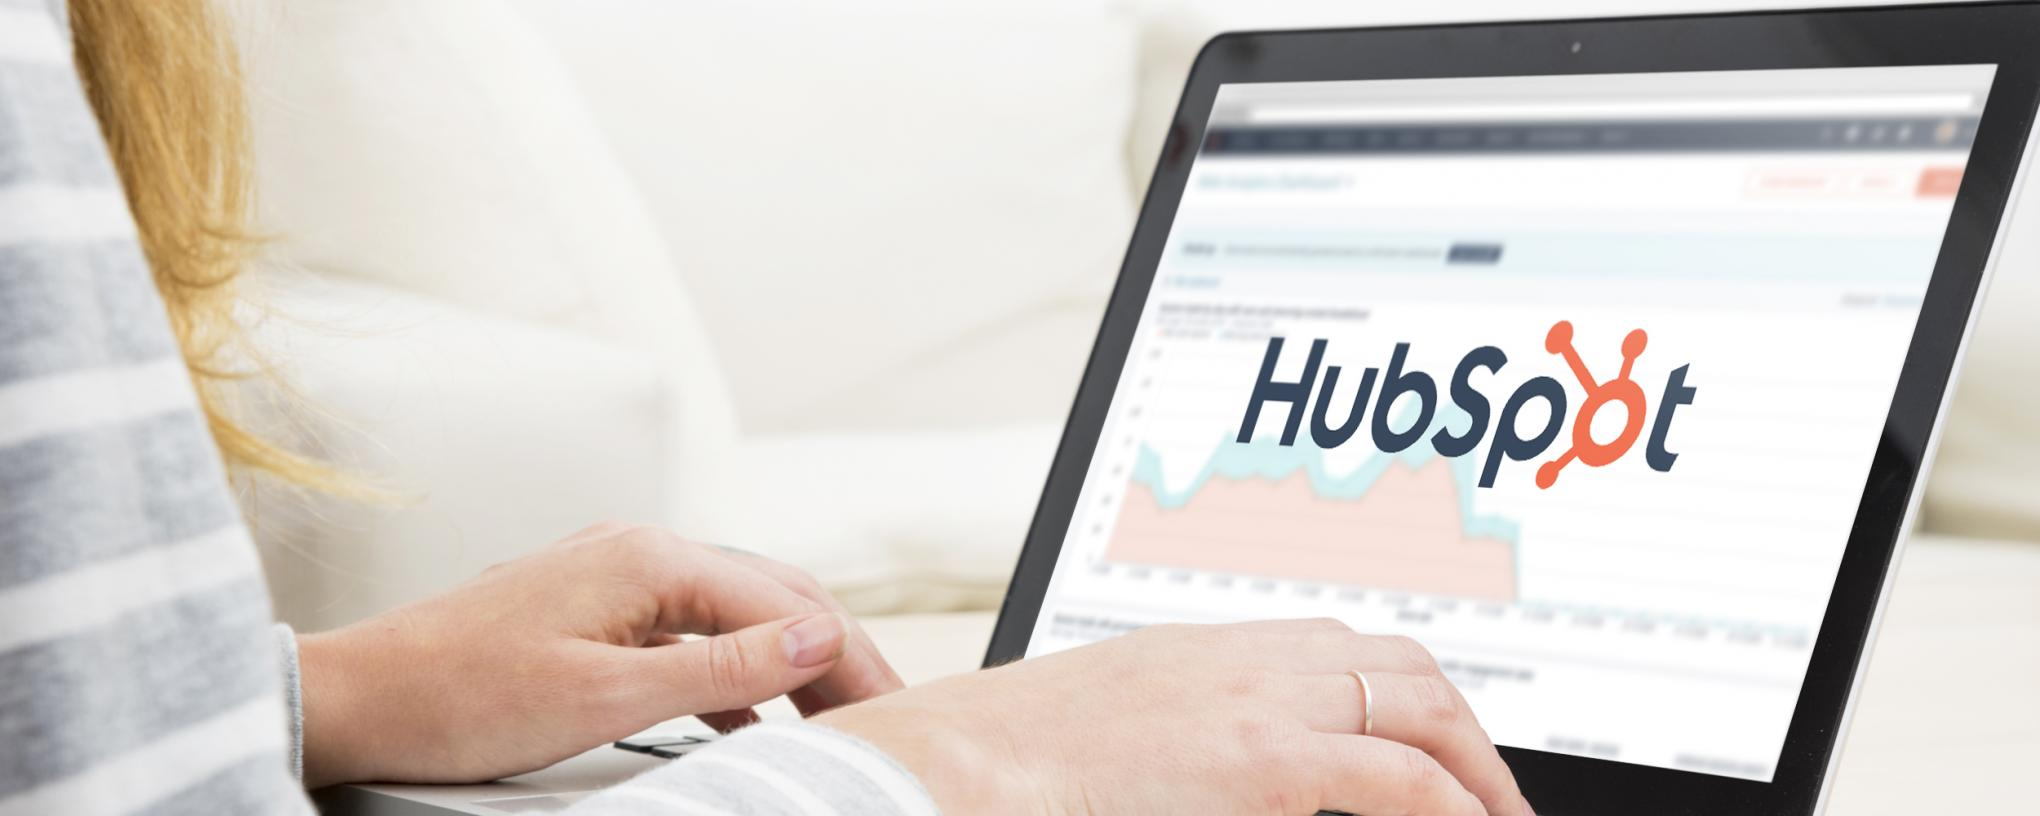 blog-hubspot-cms-header